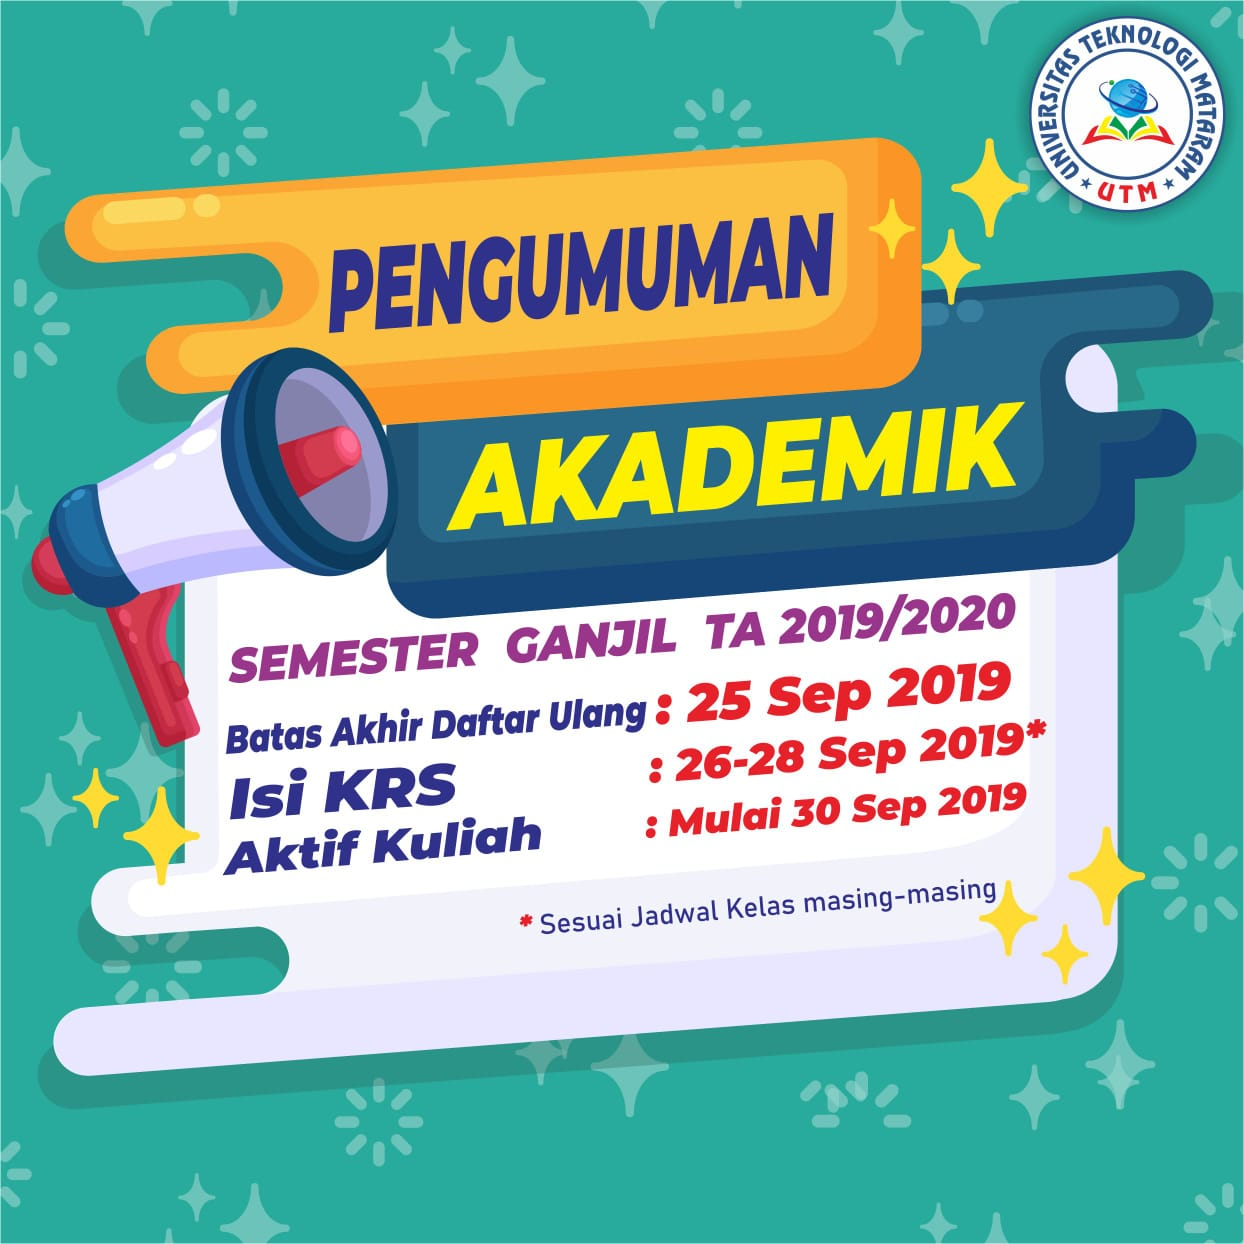 WhatsApp Image 2019-09-21 at 20.13.26